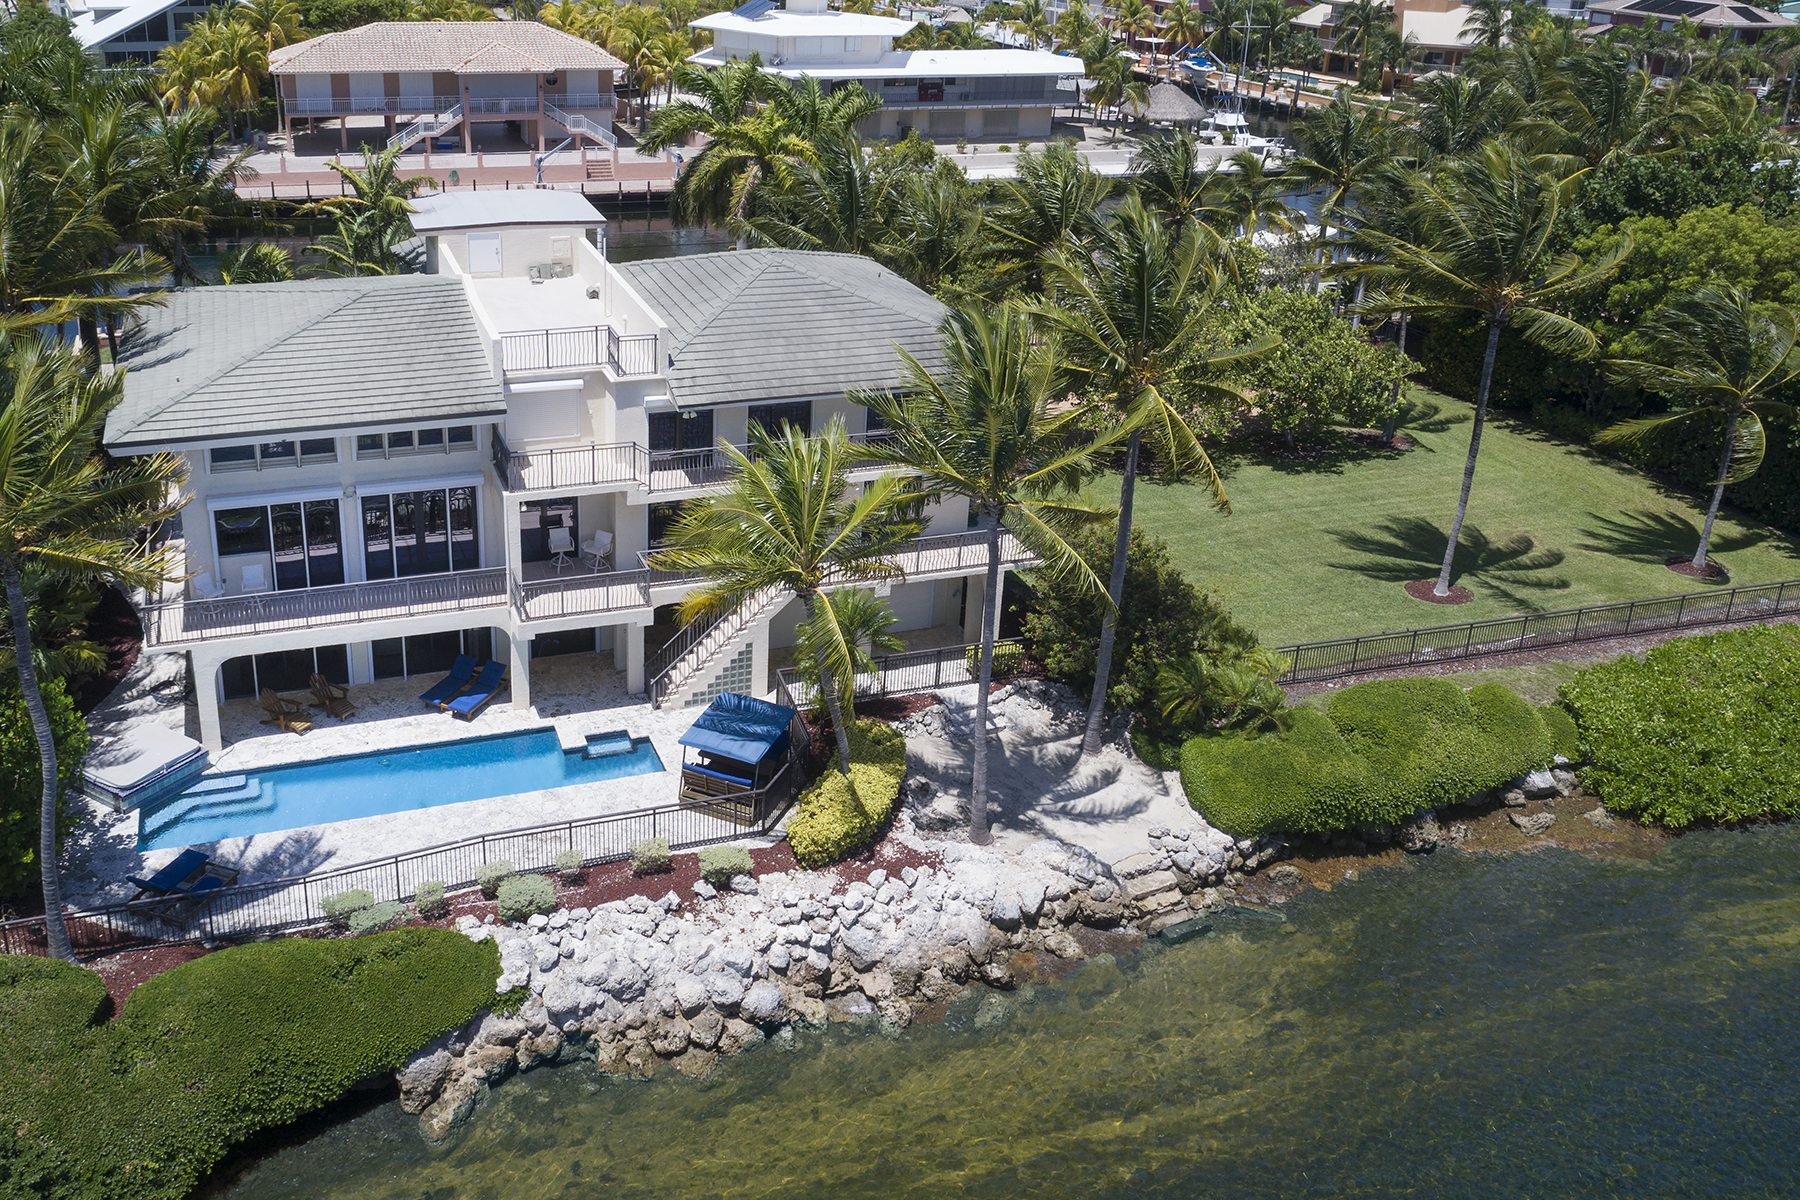 Single Family Home for Sale at Exclusive Ocean Cay Home 543-544 Ocean Cay Key Largo, Florida 33037 United States